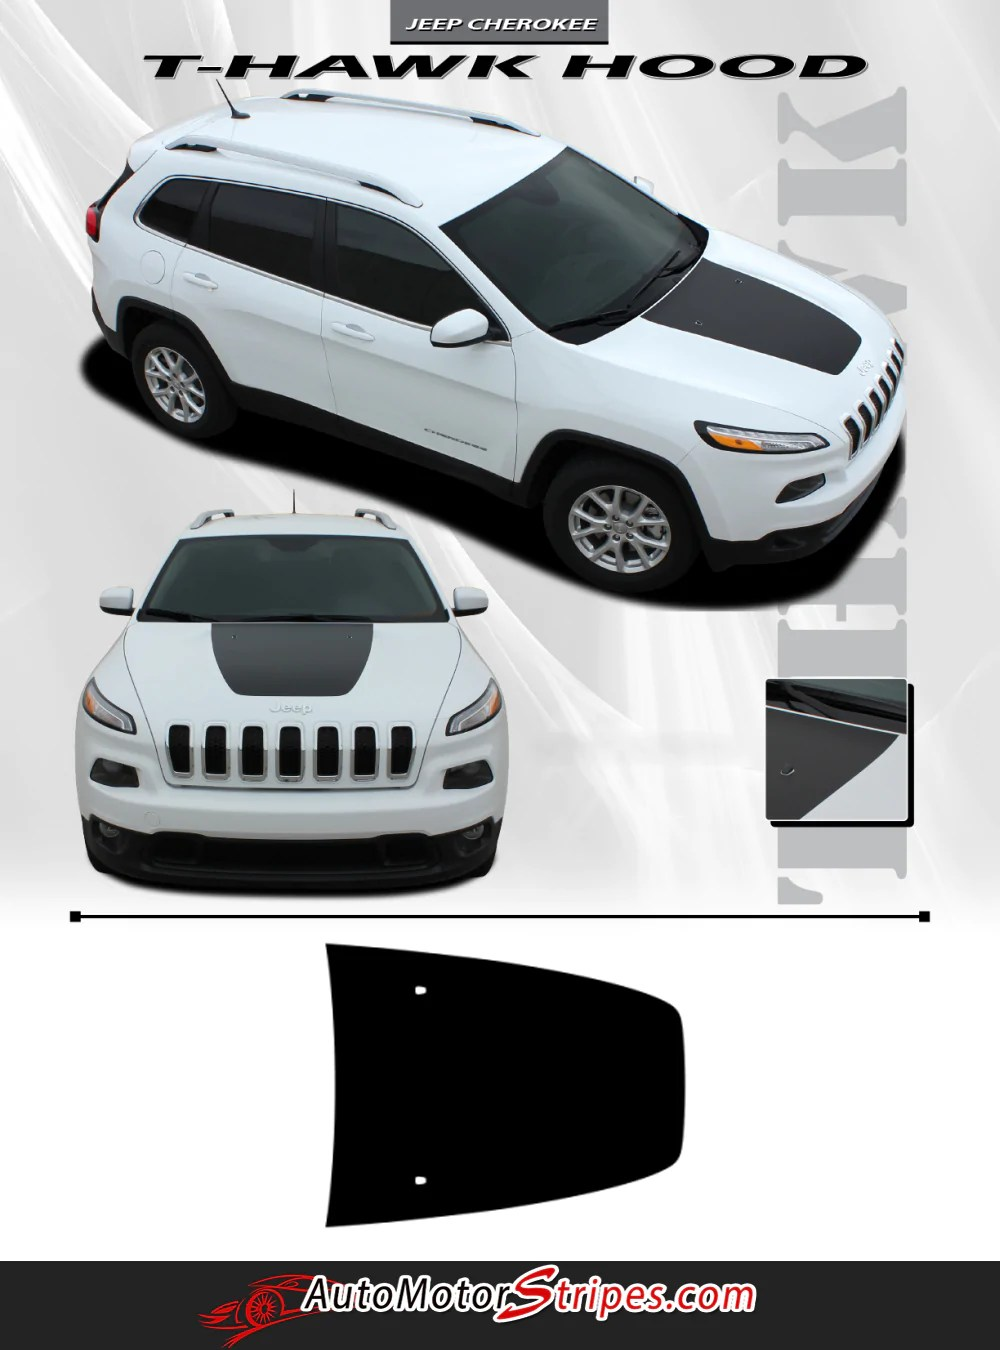 Jeep Grand Cherokee Hood Decals : grand, cherokee, decals, 2014-2021, Cherokee, Decal, T-Hawk, Trailhawk, Center, Stripe, Motor, Stripes, Decals, Vinyl, Graphics, Striping